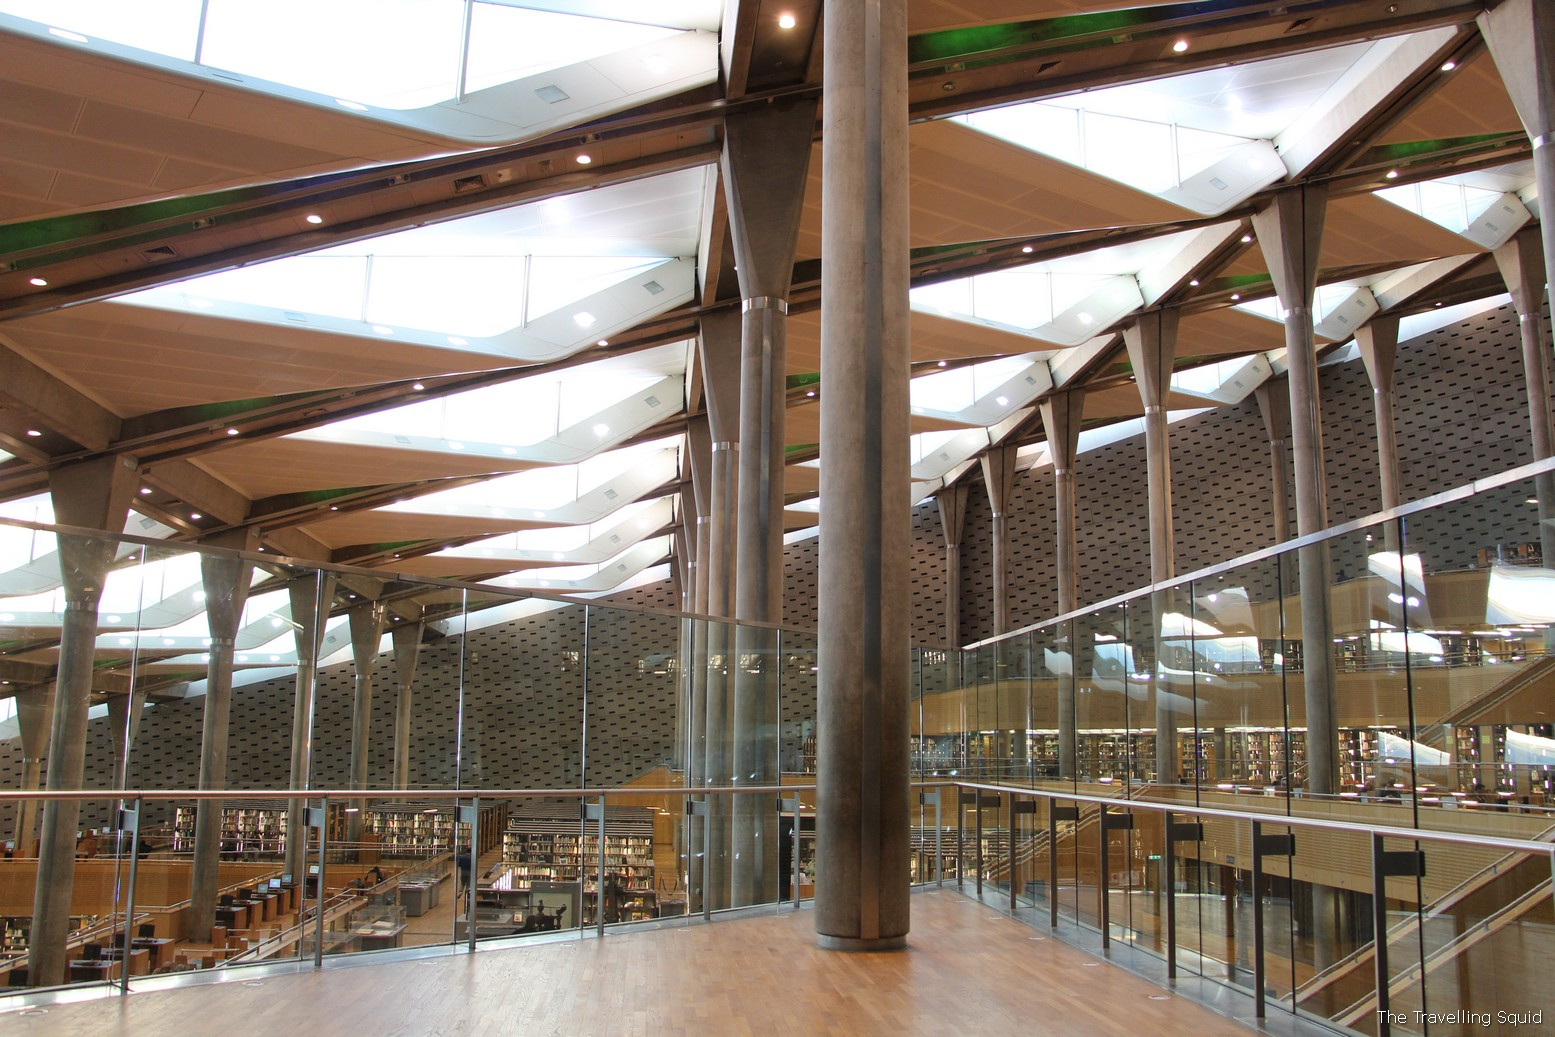 brothers who could not enter theBibliotheca Alexandrina